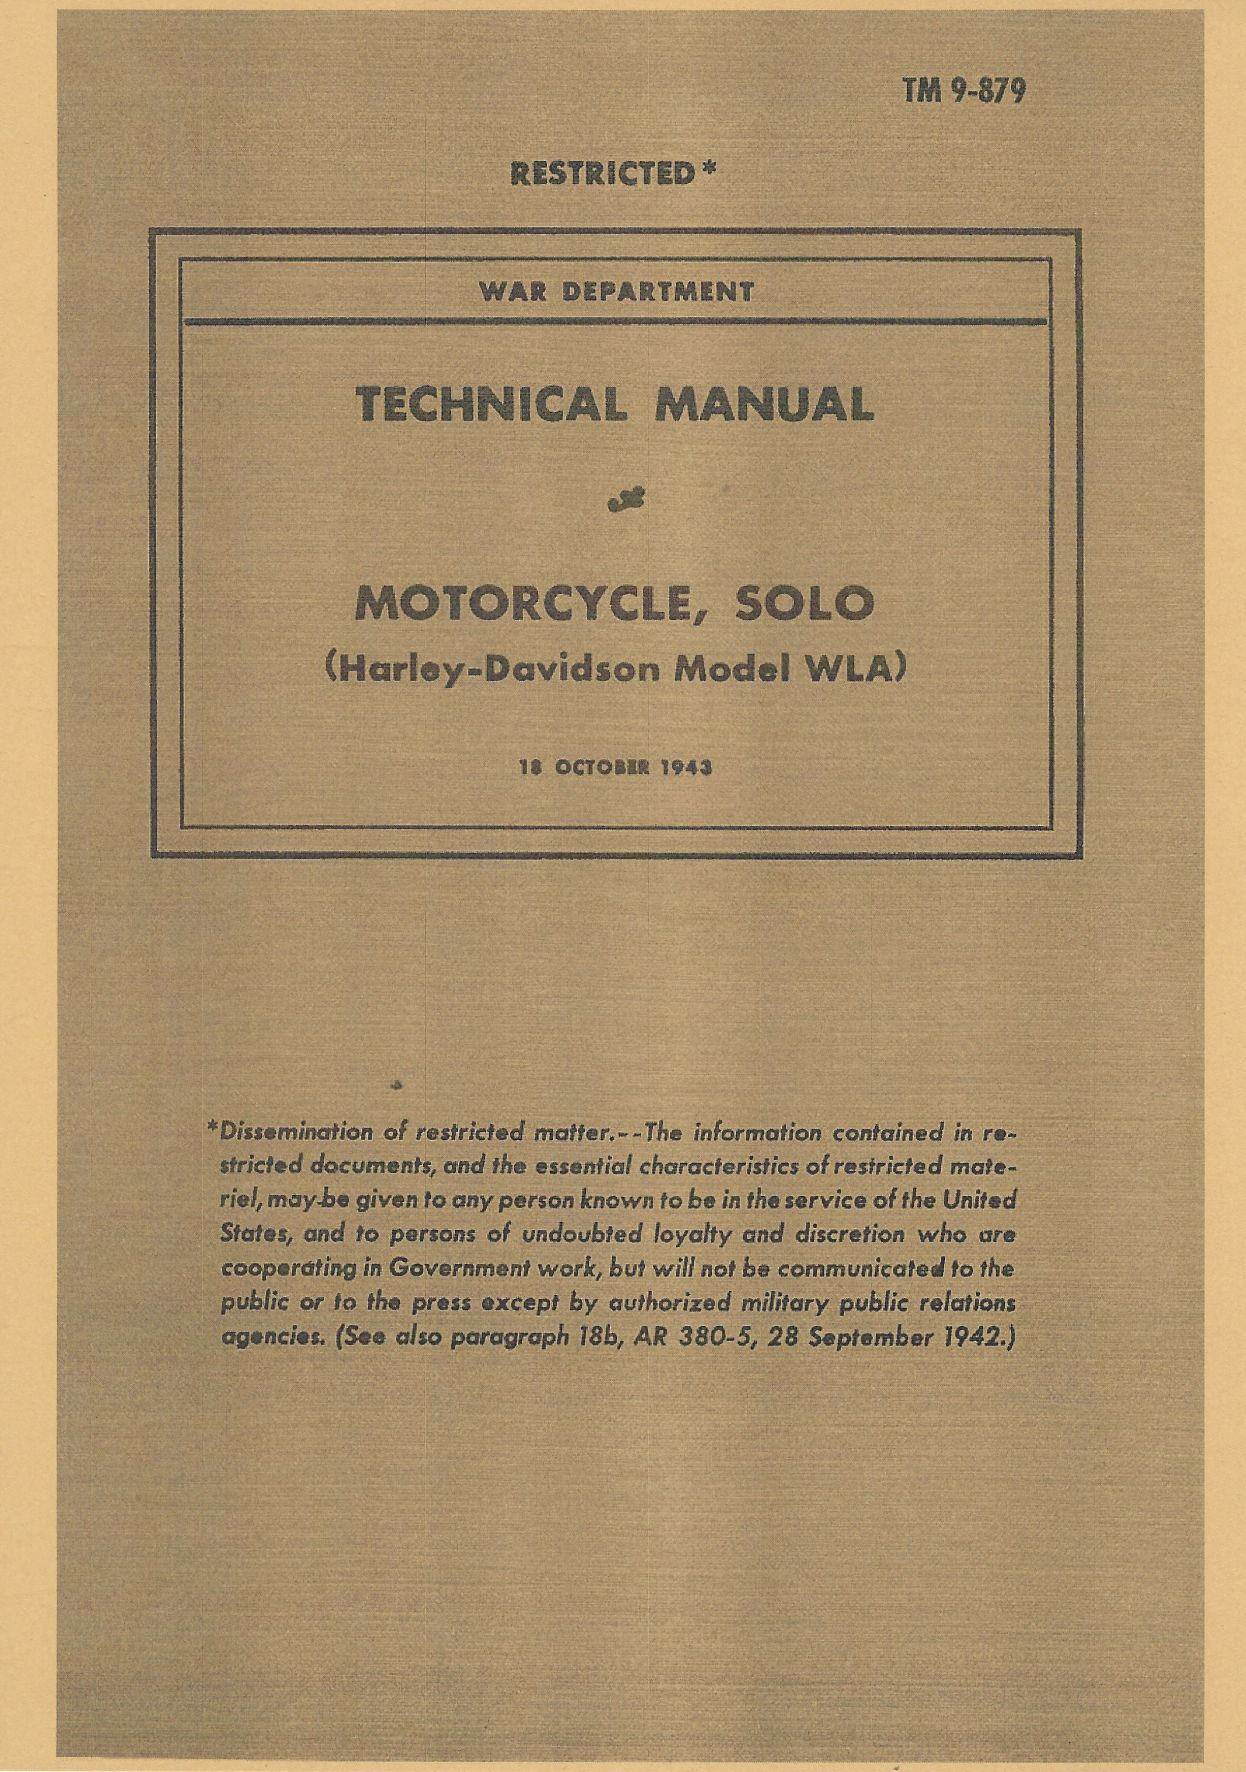 TM 9-879 US WAR DEPARTMENT TECHNICAL MANUAL MOTORCYCLE, SOLO (HARLEY-DAVIDSON MODEL WLA)